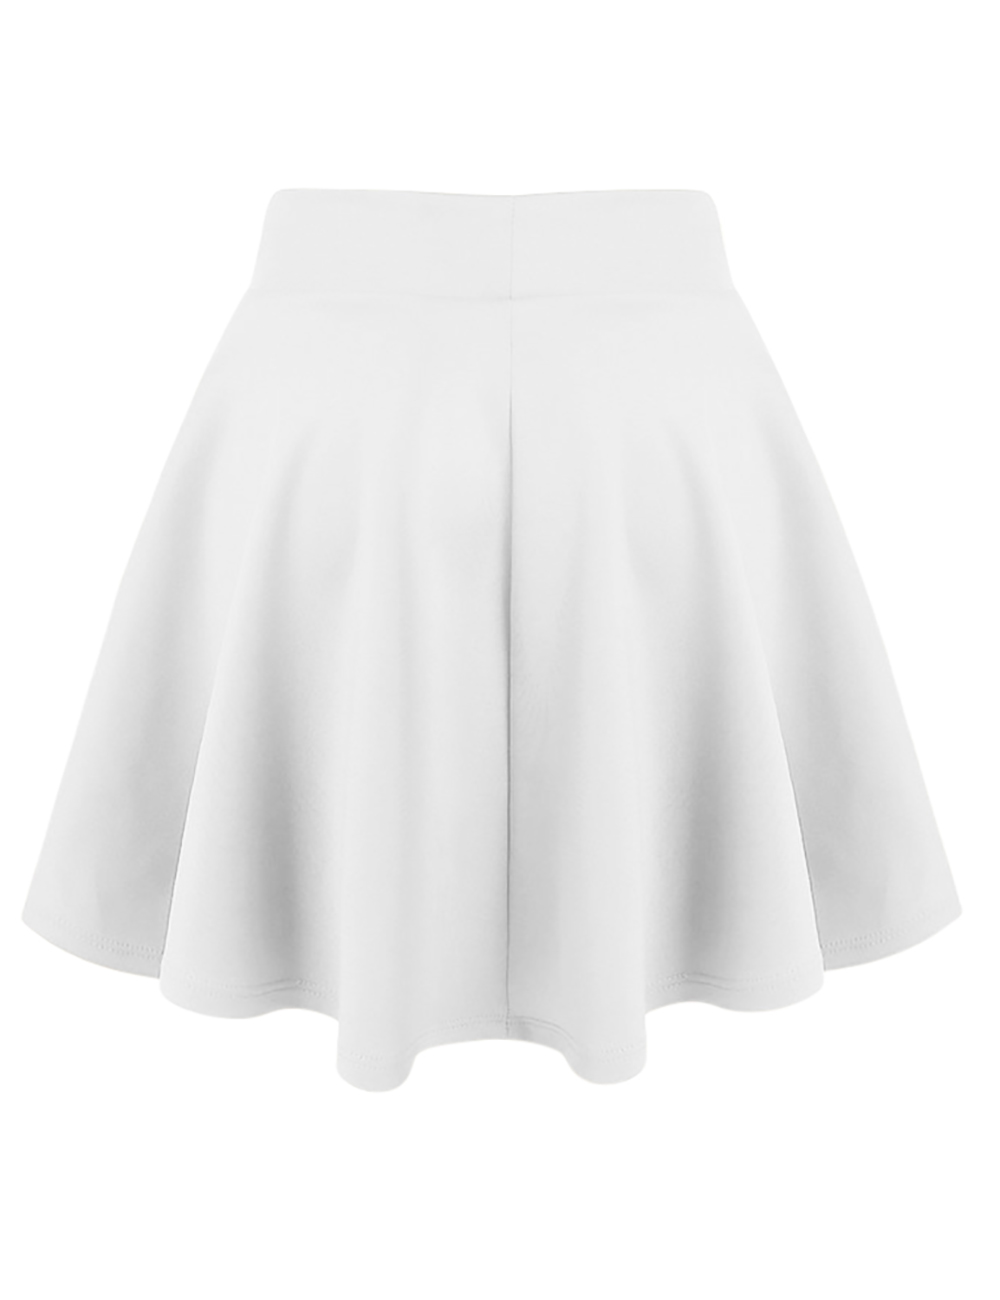 Womens-White-Skater-Skirt-A-Line-Flared-Skirt-